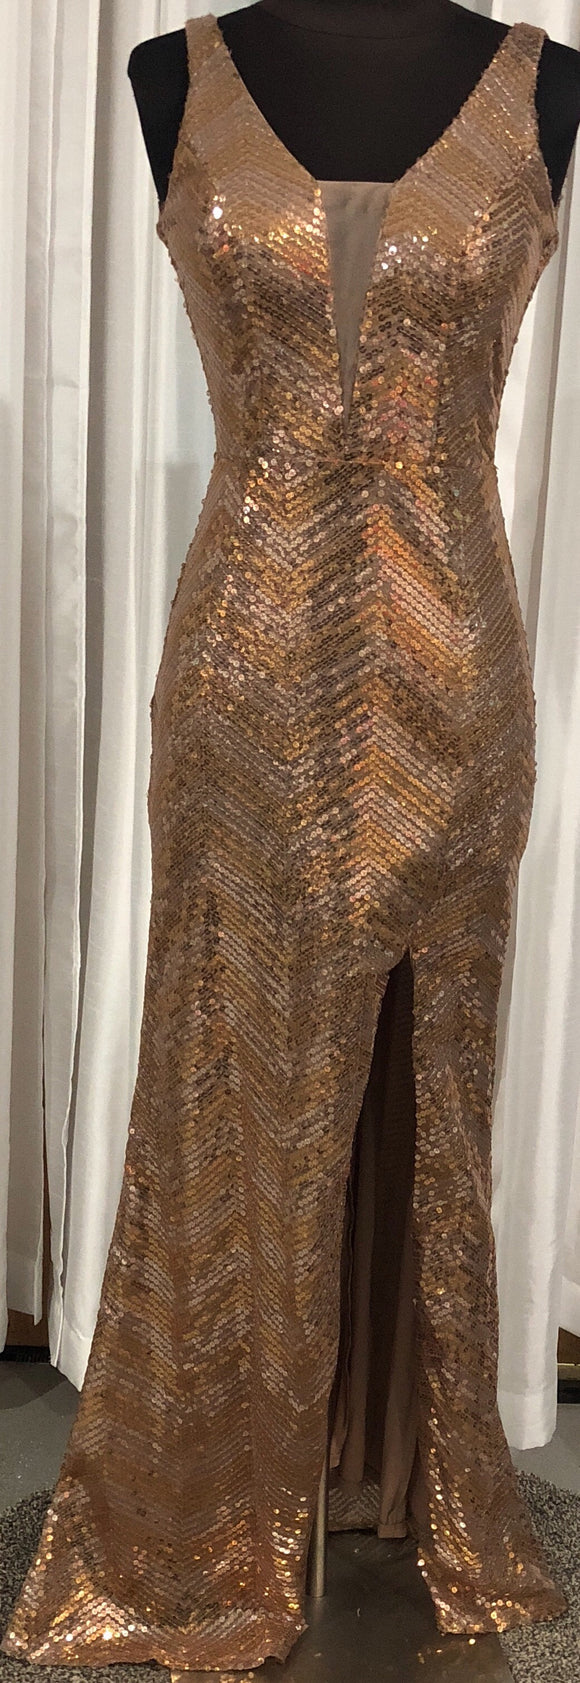 BOUTIQUE Long Sequin Dress Size 3